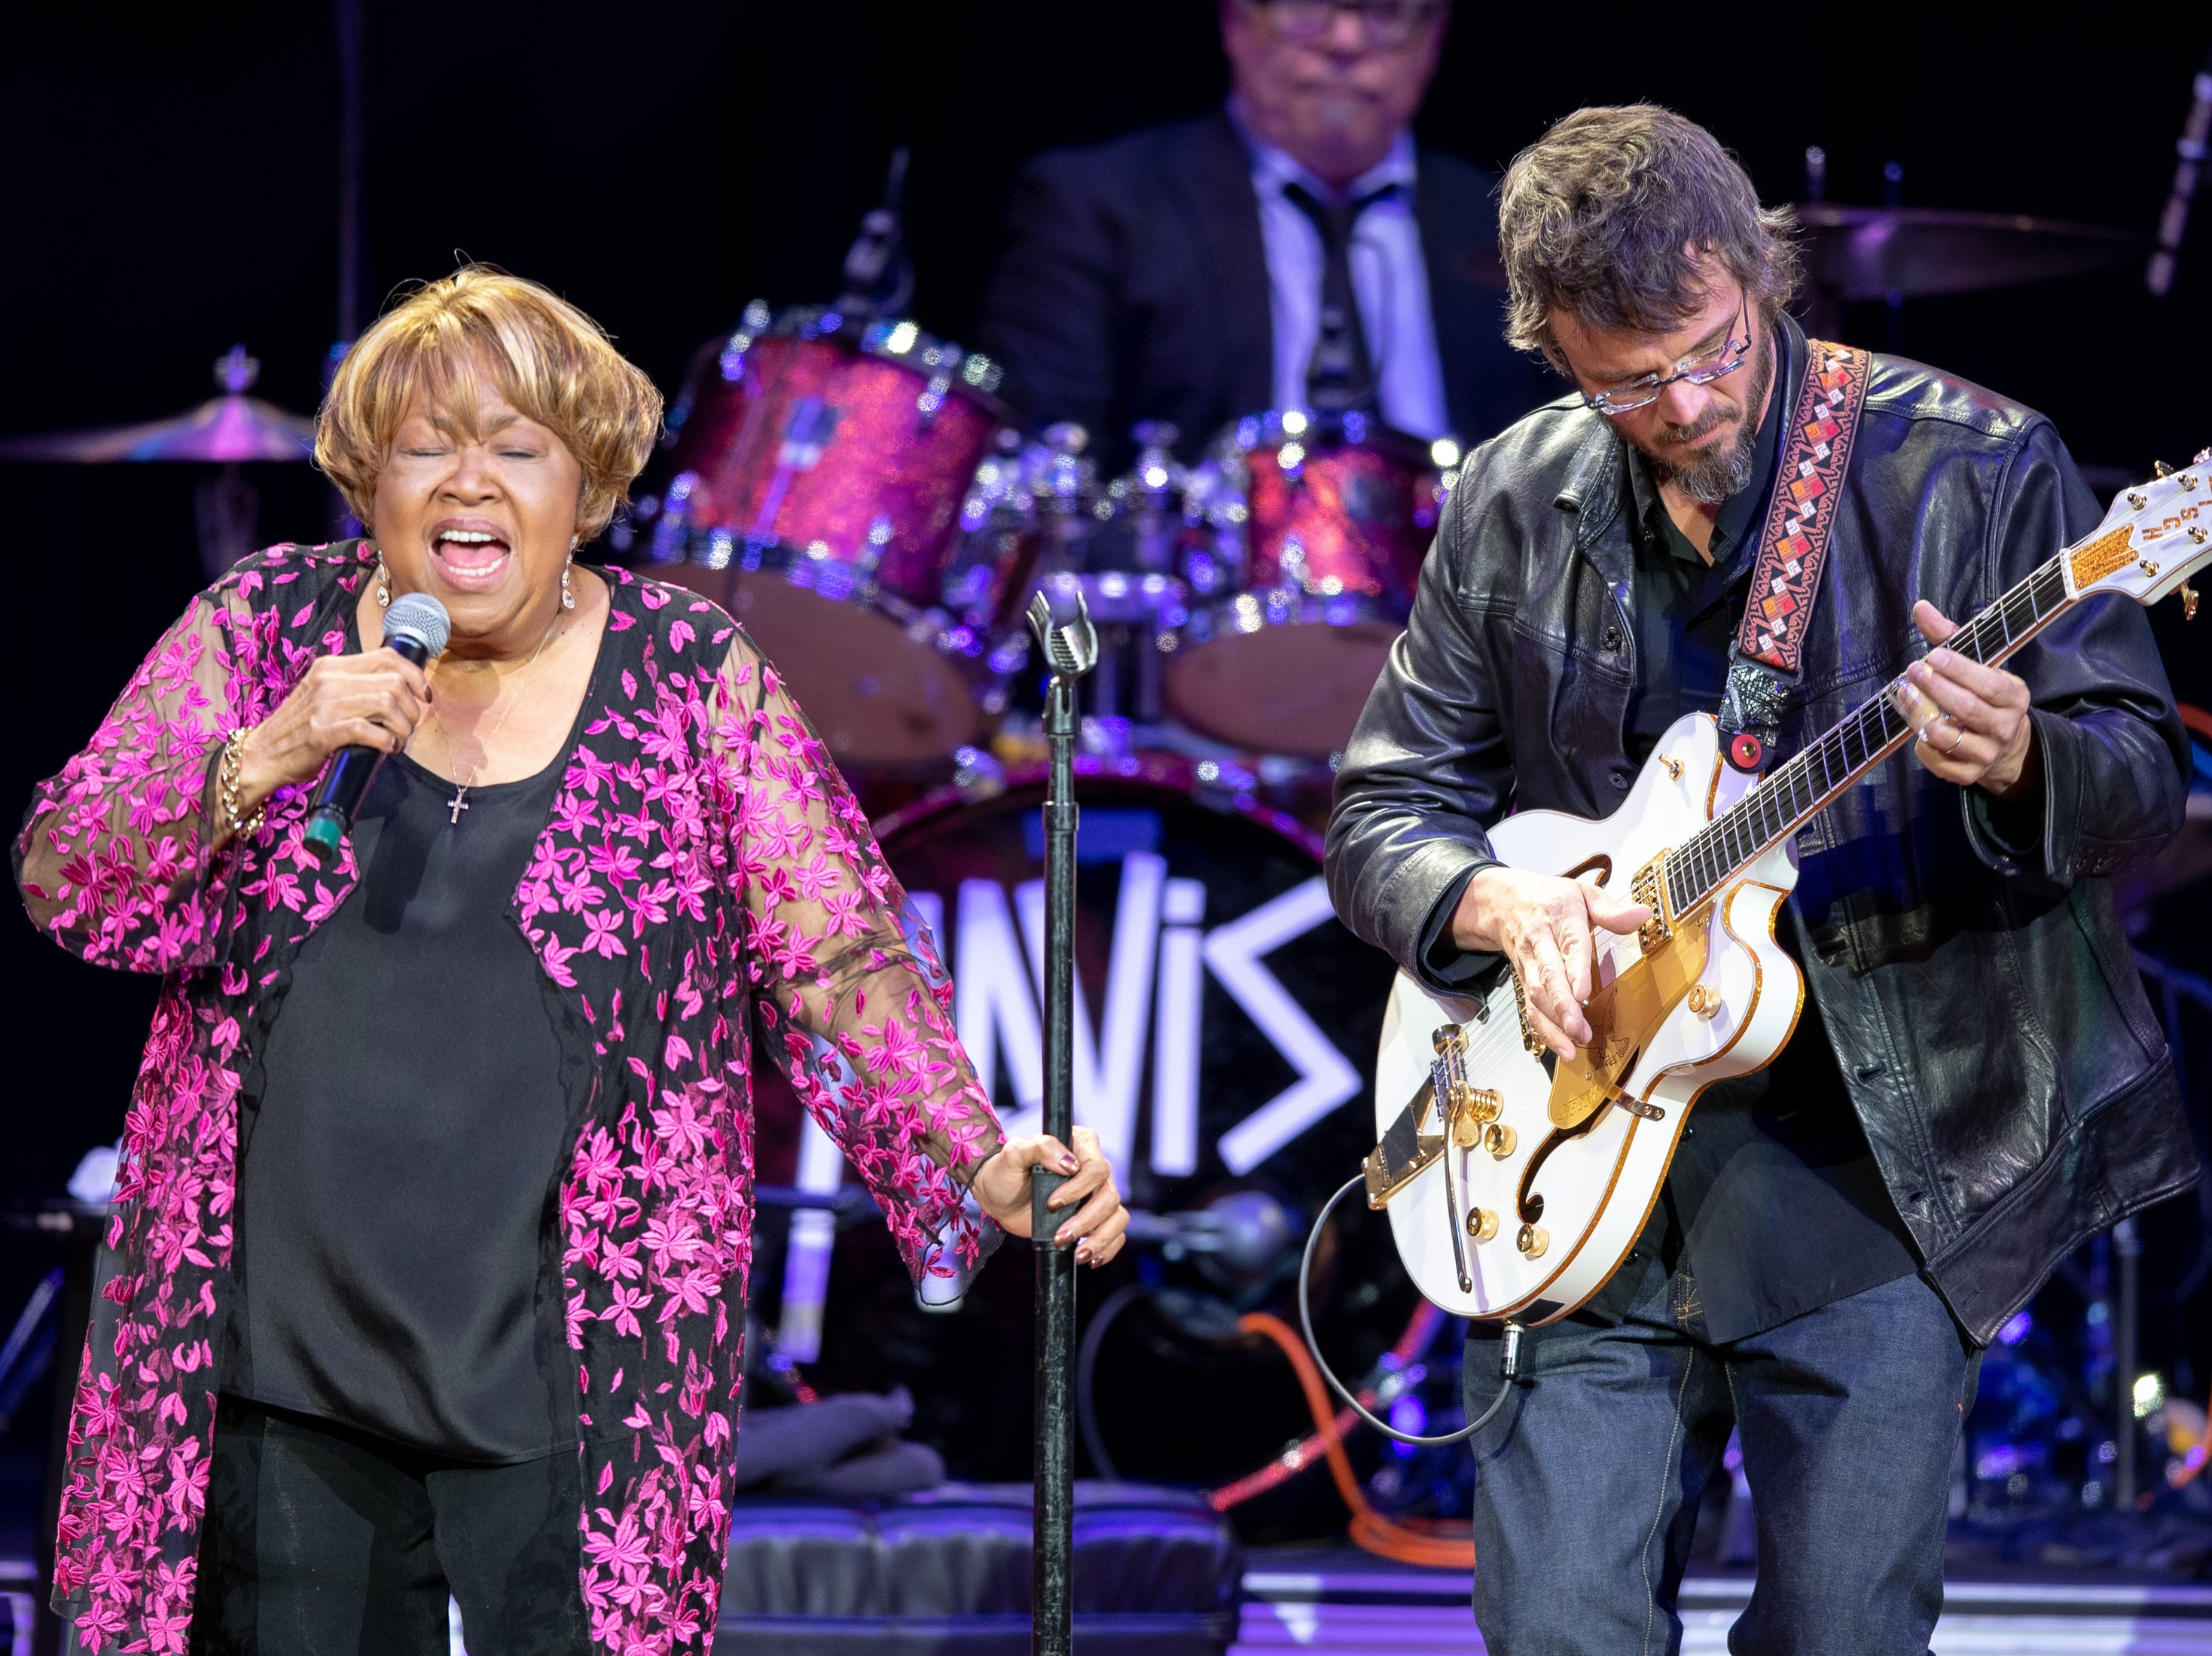 Mavis Staples performs with Luther Dickinson during the Mavis and Friends concert at the Ryman Auditorium in Nashville, Tenn., Wednesday, May 15, 2019.